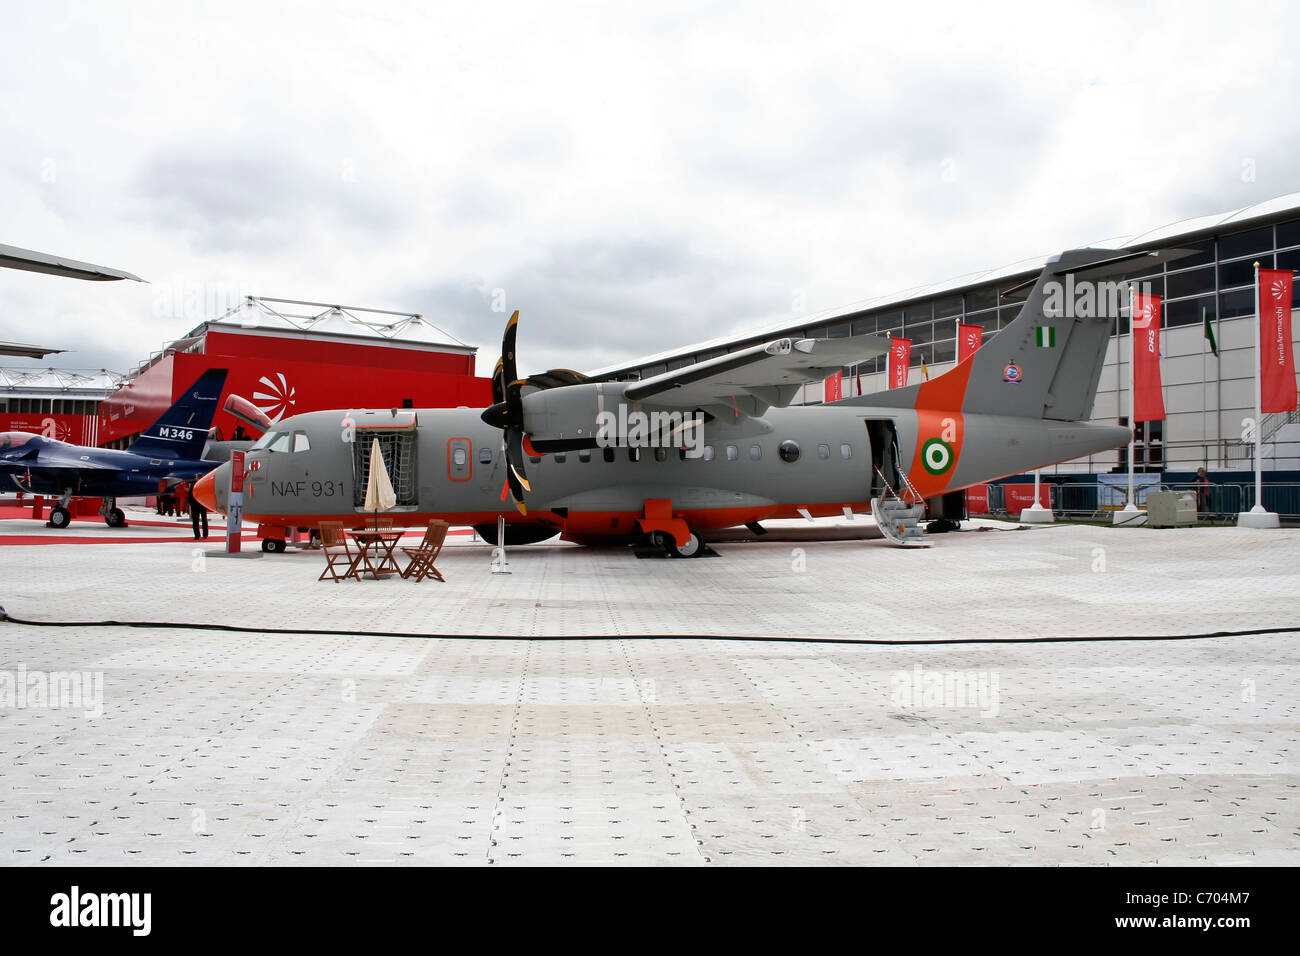 Nigeria Air Force ATR 42-500MP Surveyor at the Farnborough International Airshow Event July 23, 2010 in Farnborough, - Stock Image